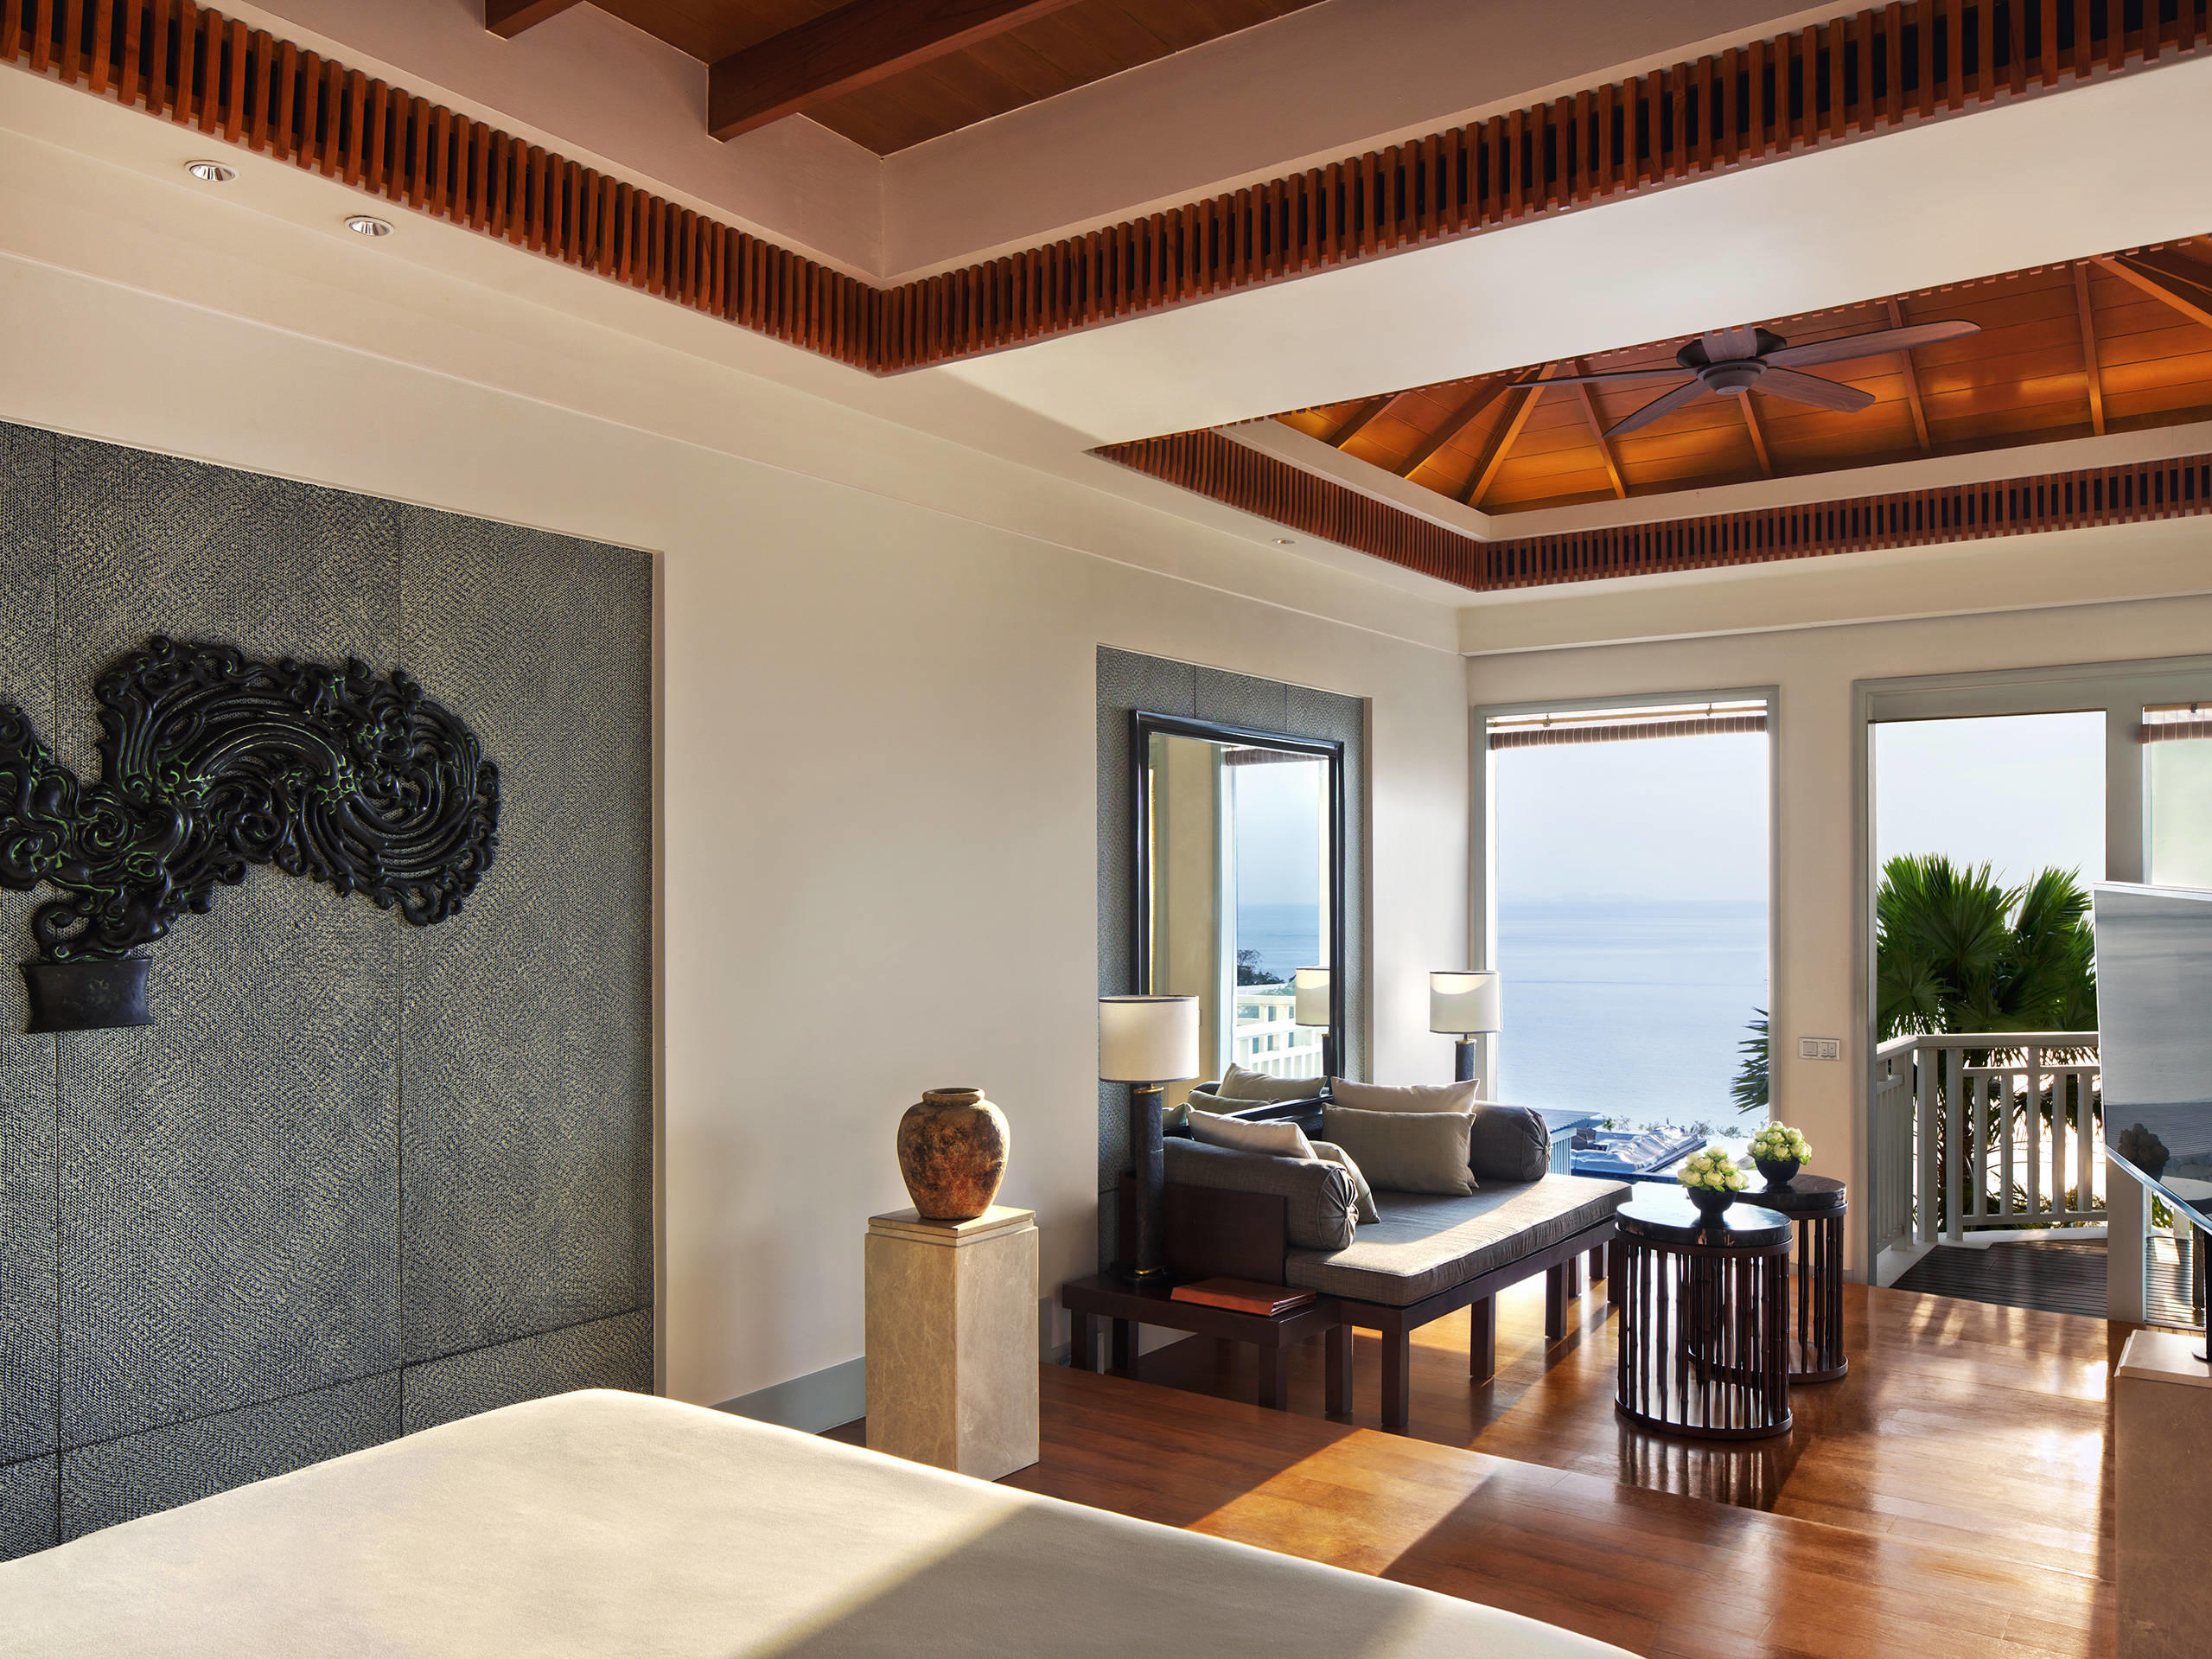 Amatara Wellness Resort - Sea View Suite living area